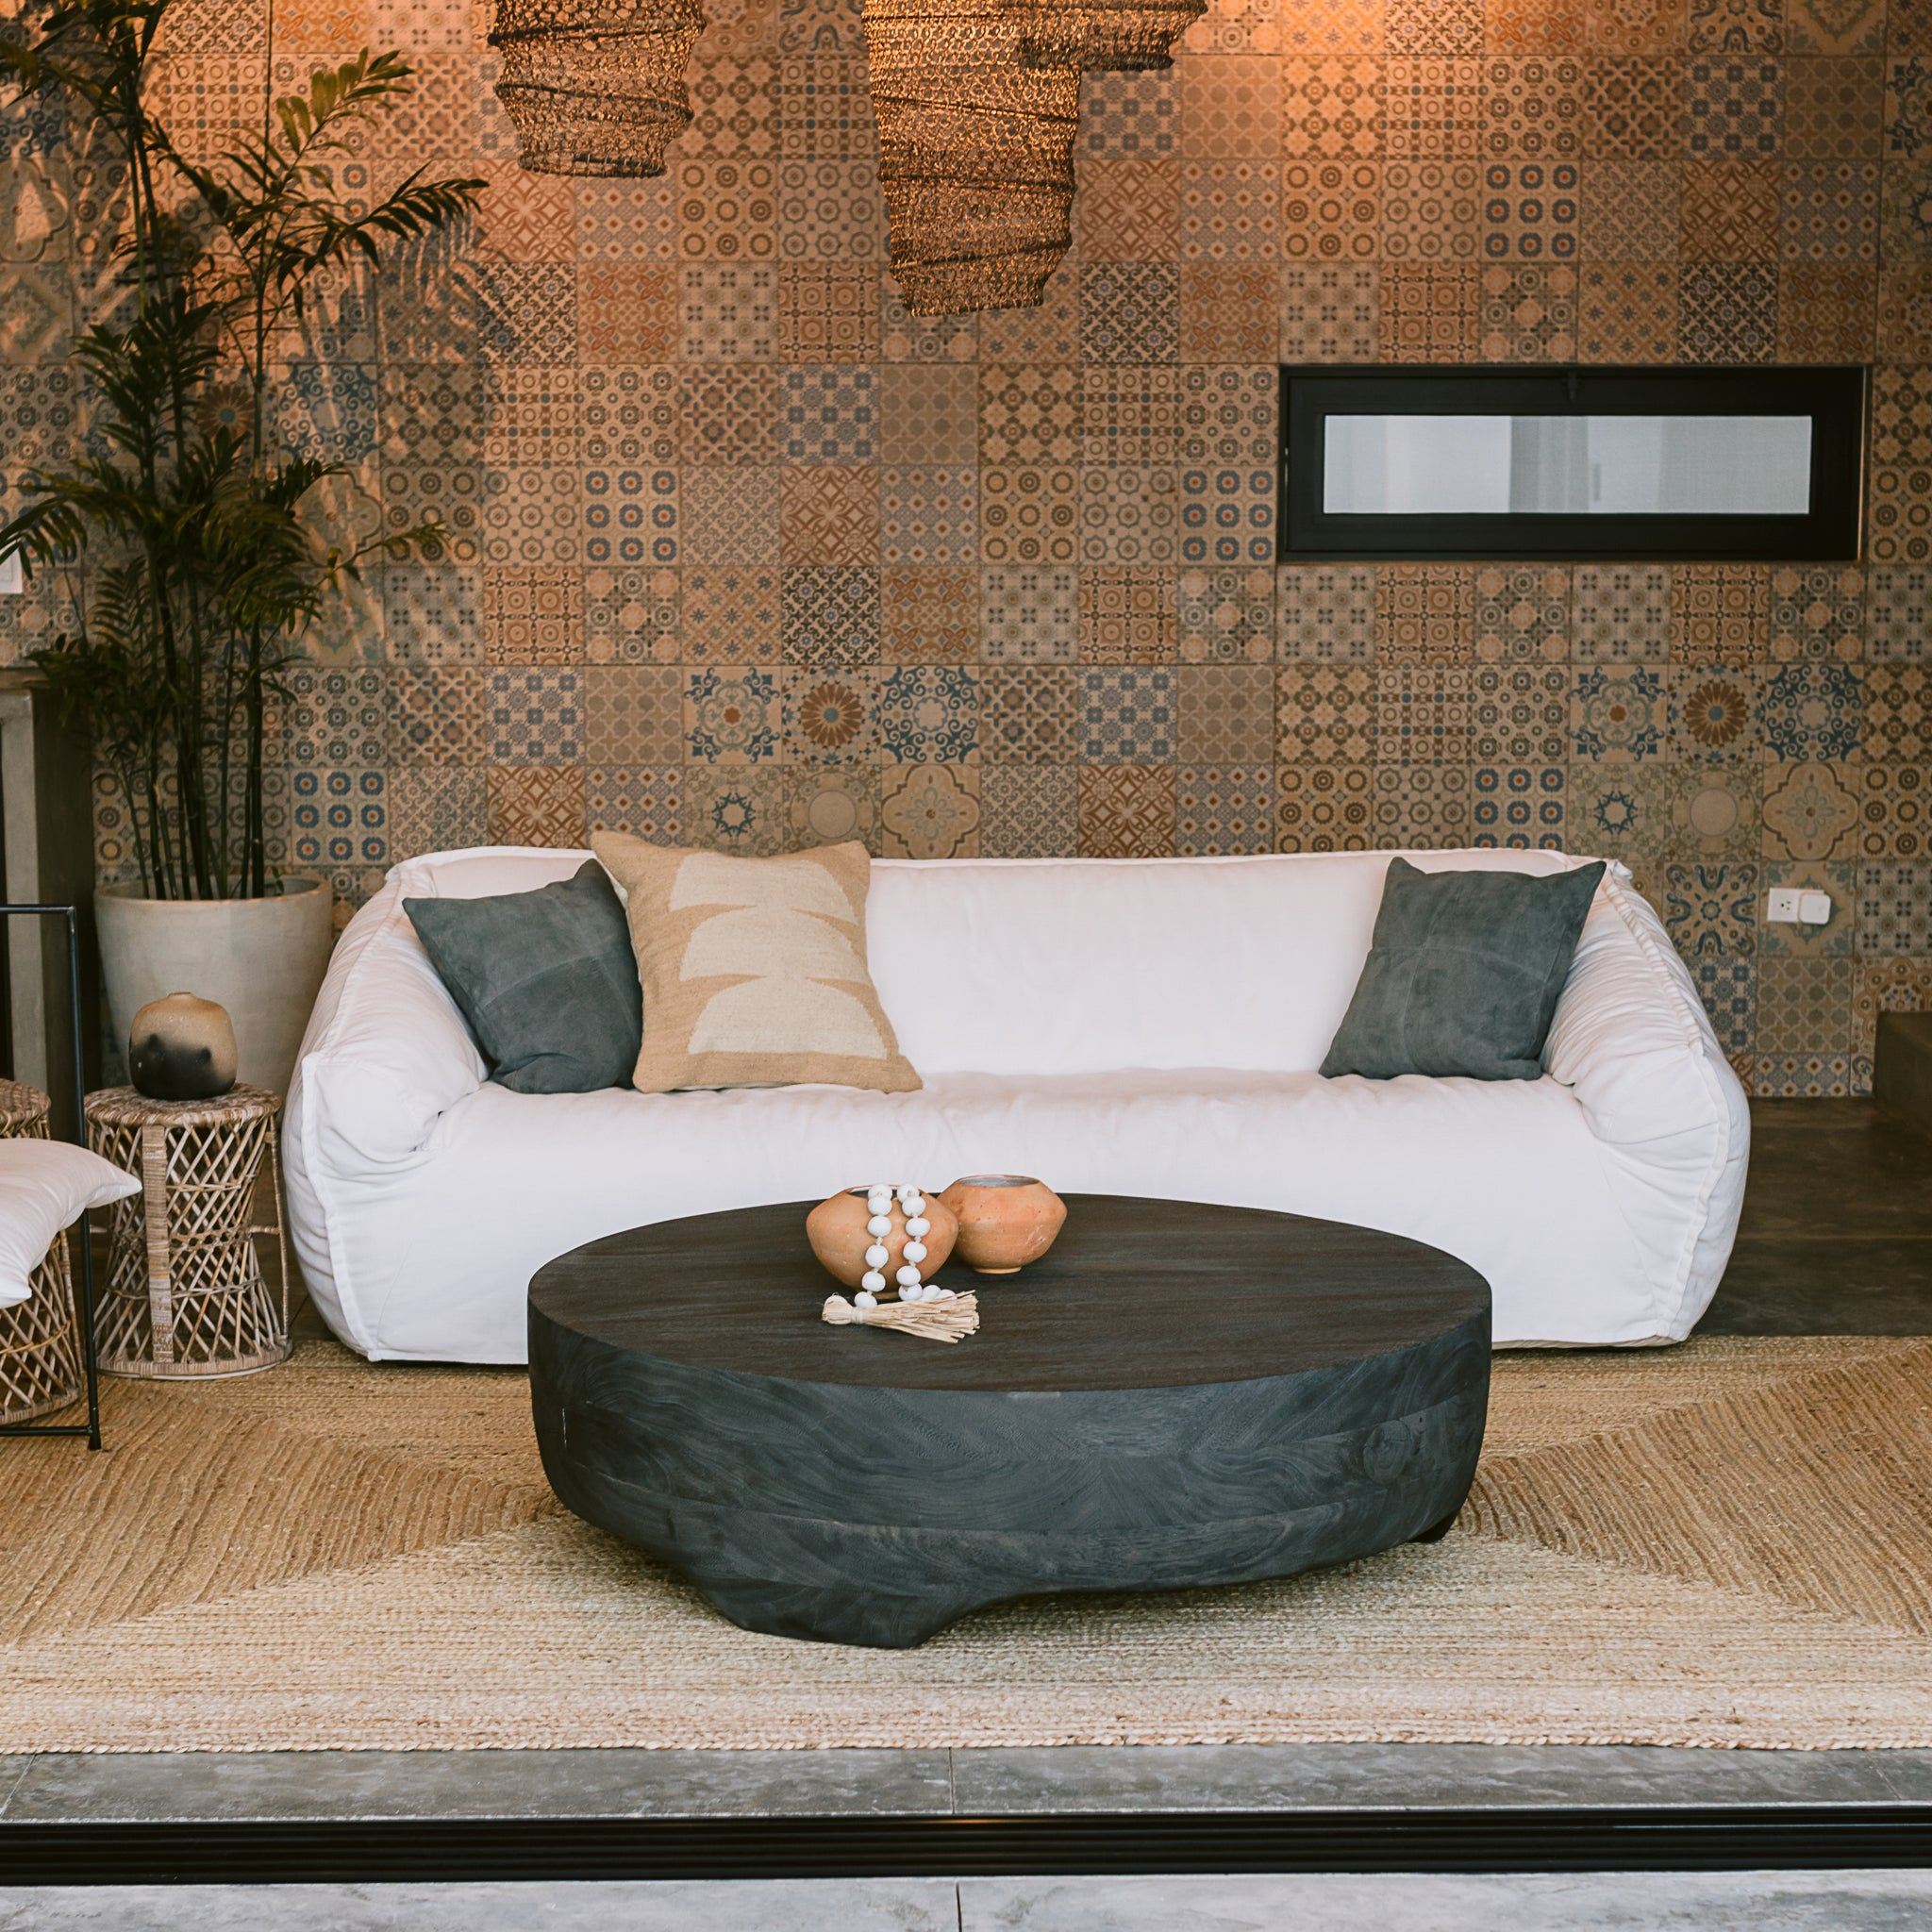 A living room featuring a white stuffed couch, wool and leather throw pillows, a modern grey coffee table and Mexican ceramics.